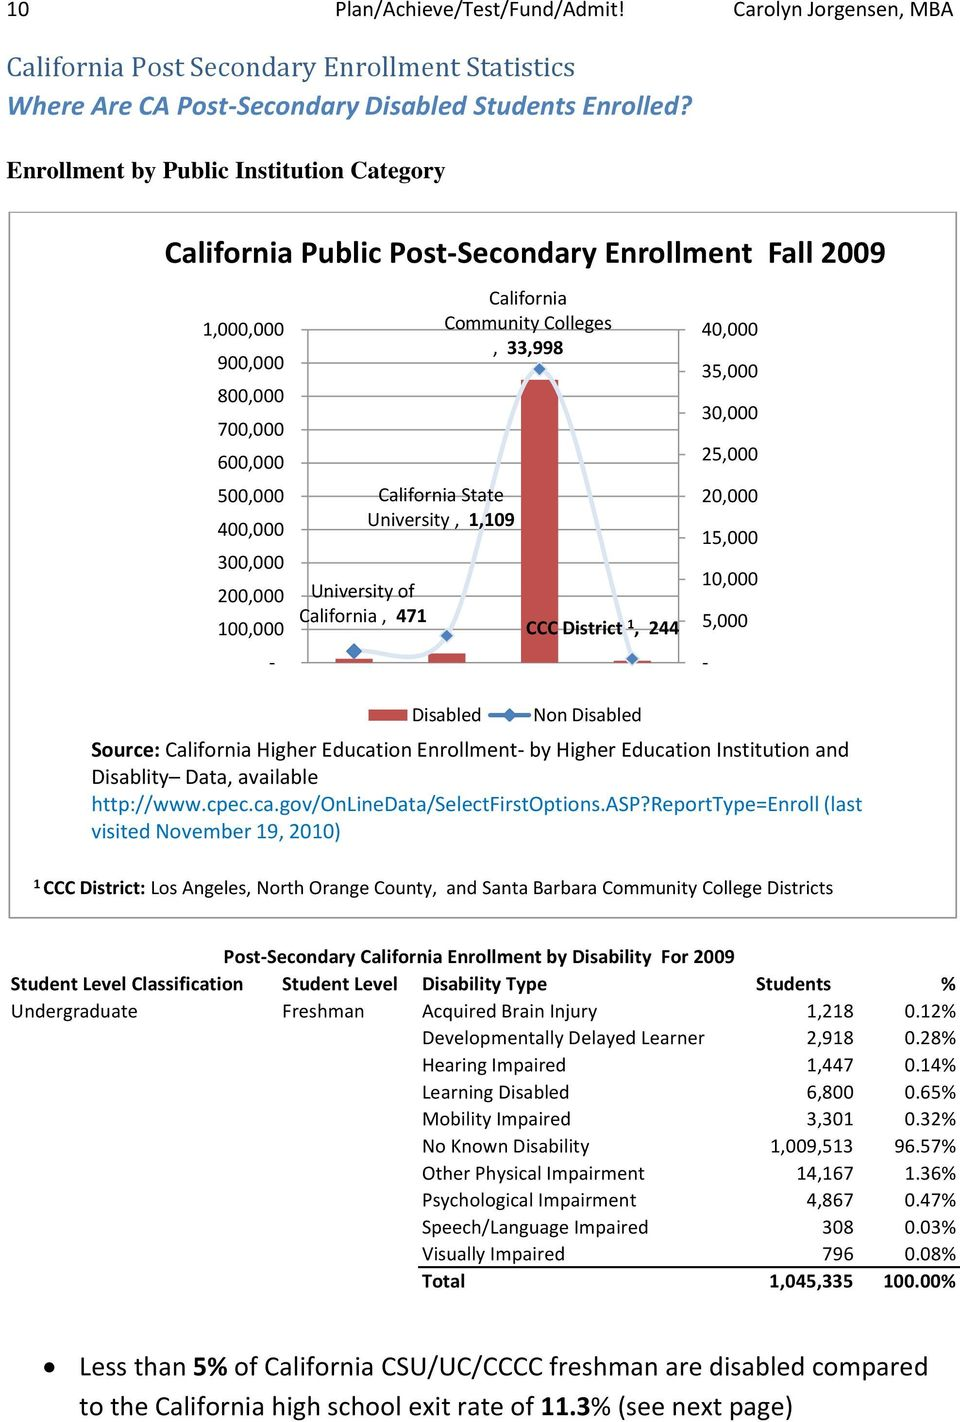 California, 471 California Community Colleges, 33,998 California State University, 1,109 CCC District 1, 244 40,000 35,000 30,000 25,000 20,000 15,000 10,000 5,000 - Disabled Non Disabled Source: